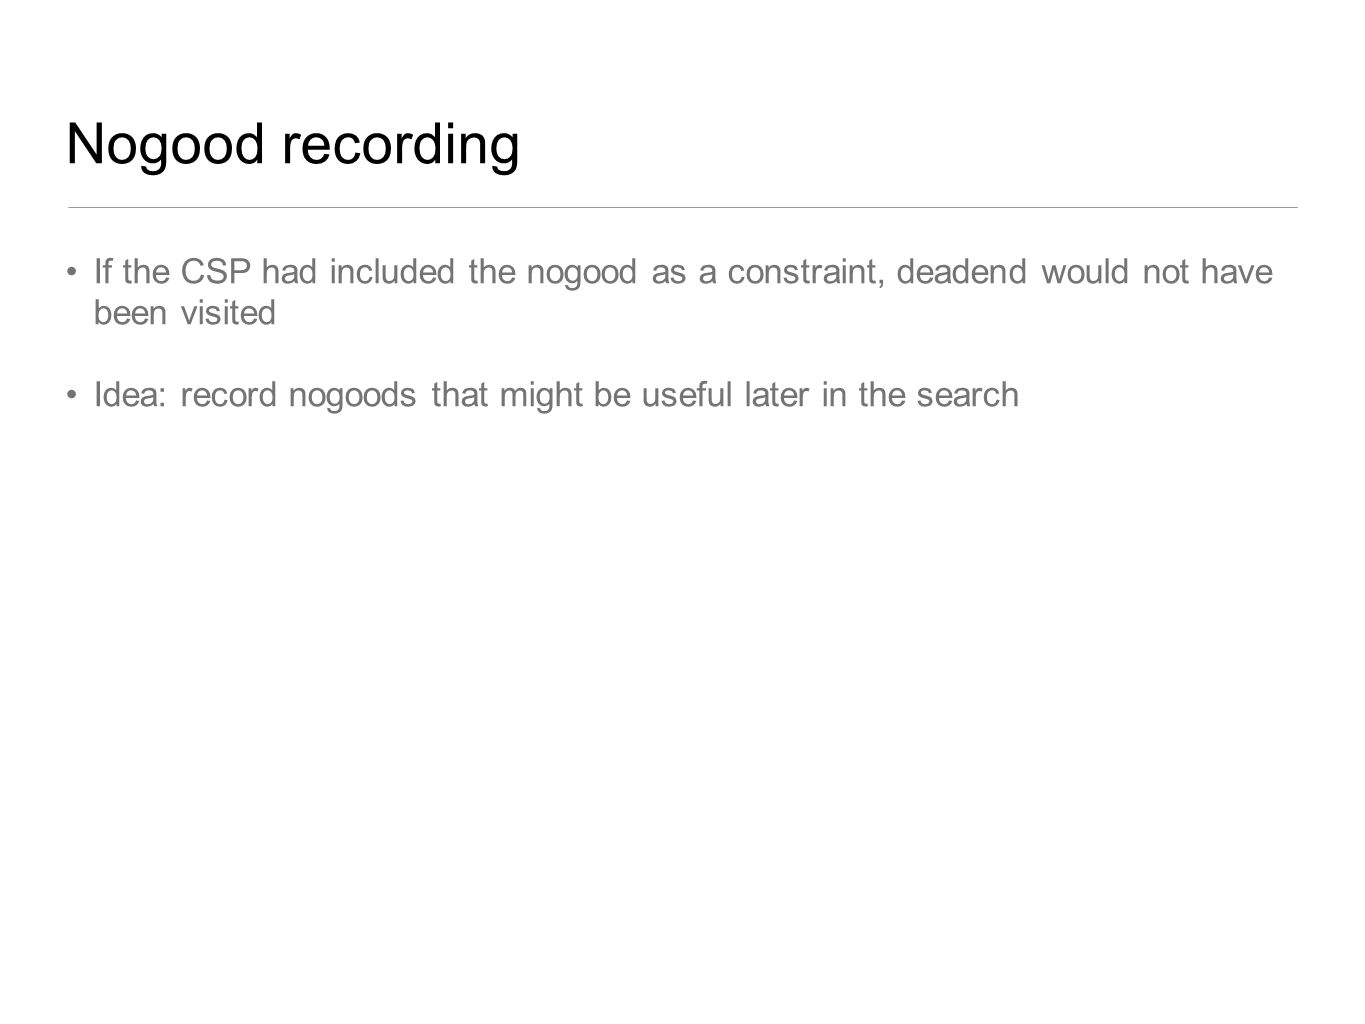 Nogood recording If the CSP had included the nogood as a constraint, deadend would not have been visited.